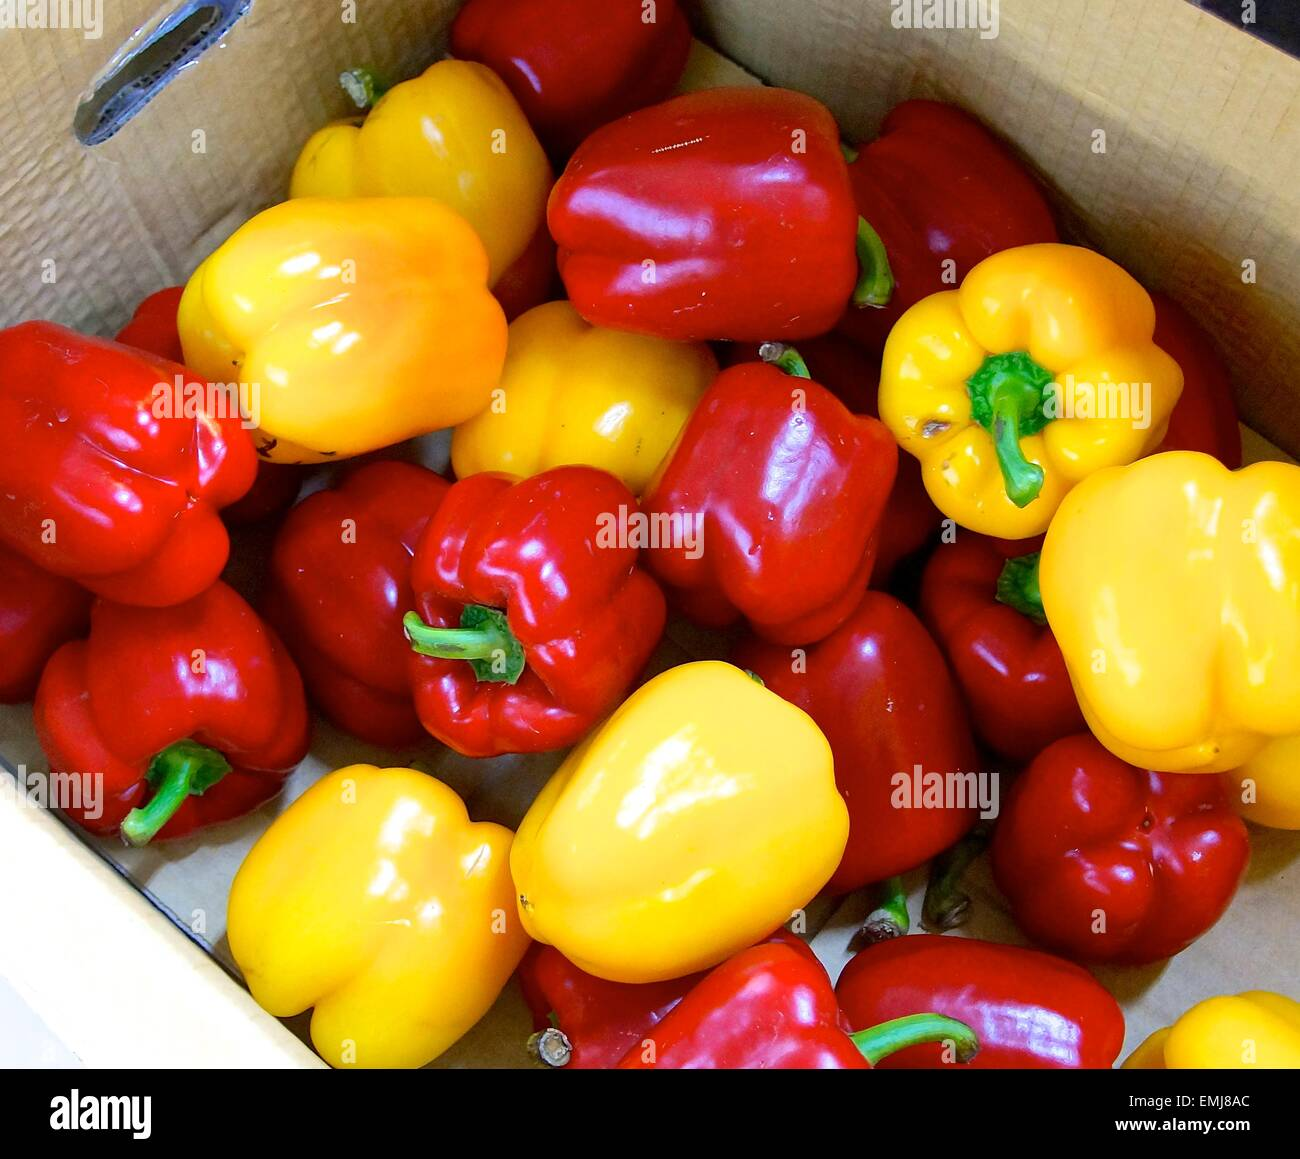 Red,yellow pepper in the box for sale - Stock Image